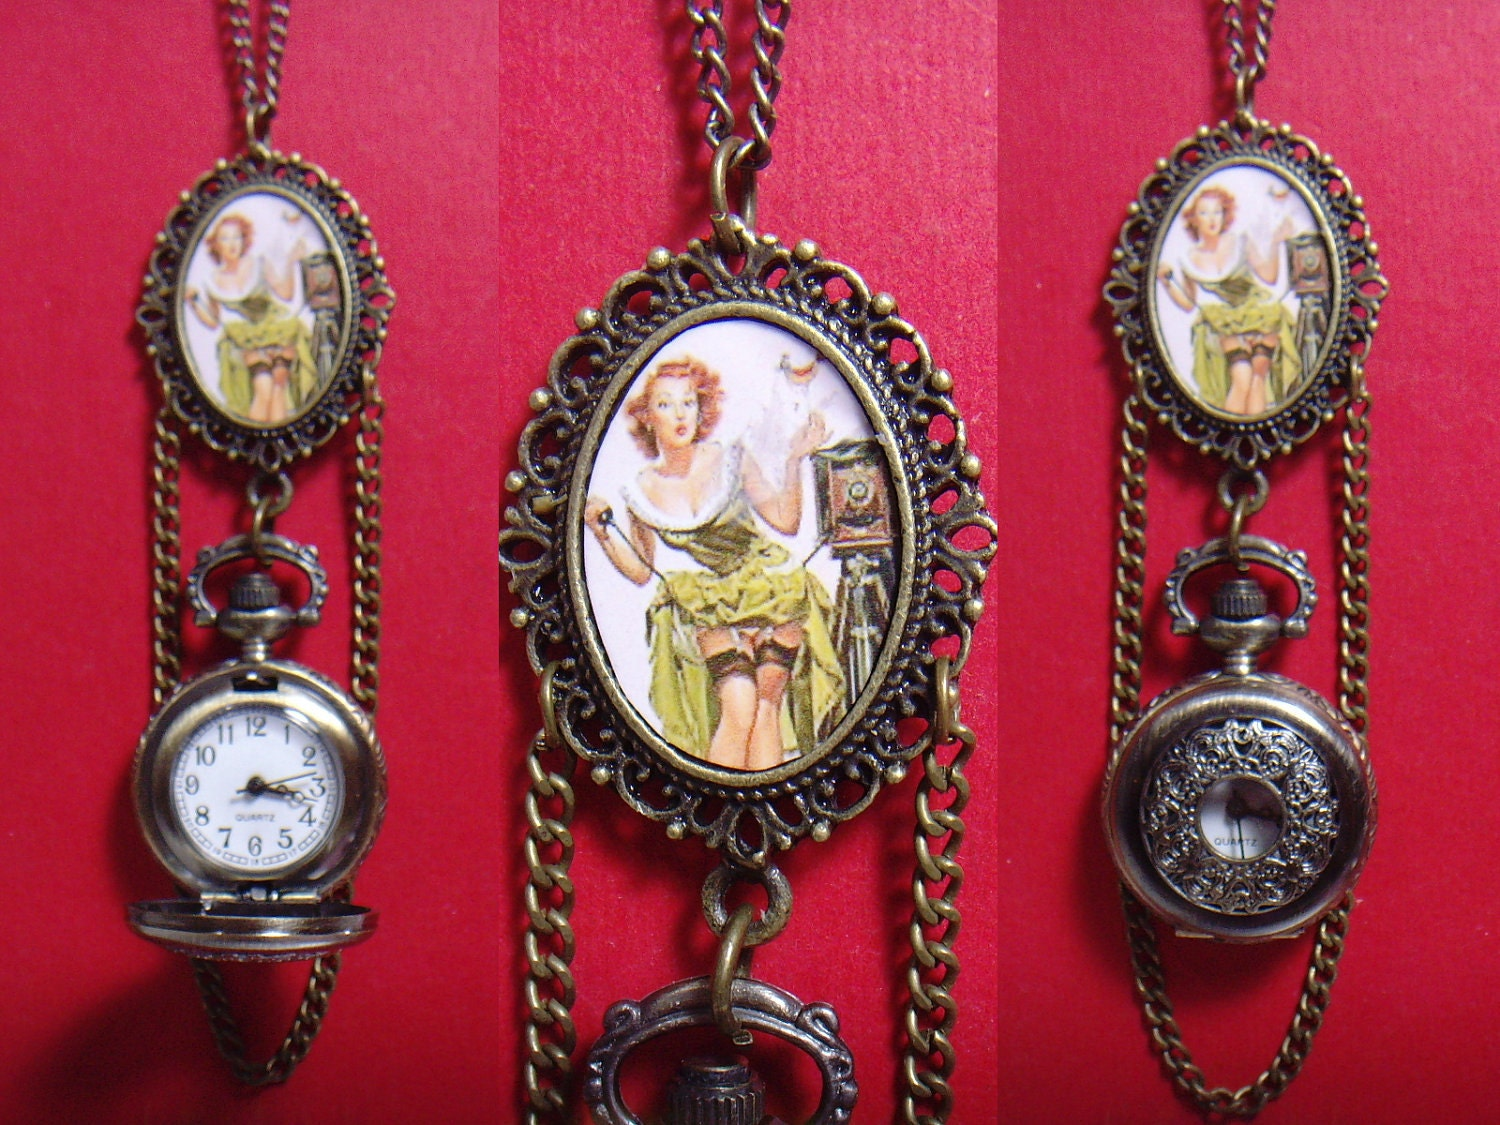 New collection unique design vintage style sexy lady portrait cameo oval charm with lace filigree cover case pocket watch 24 inches chain necklace